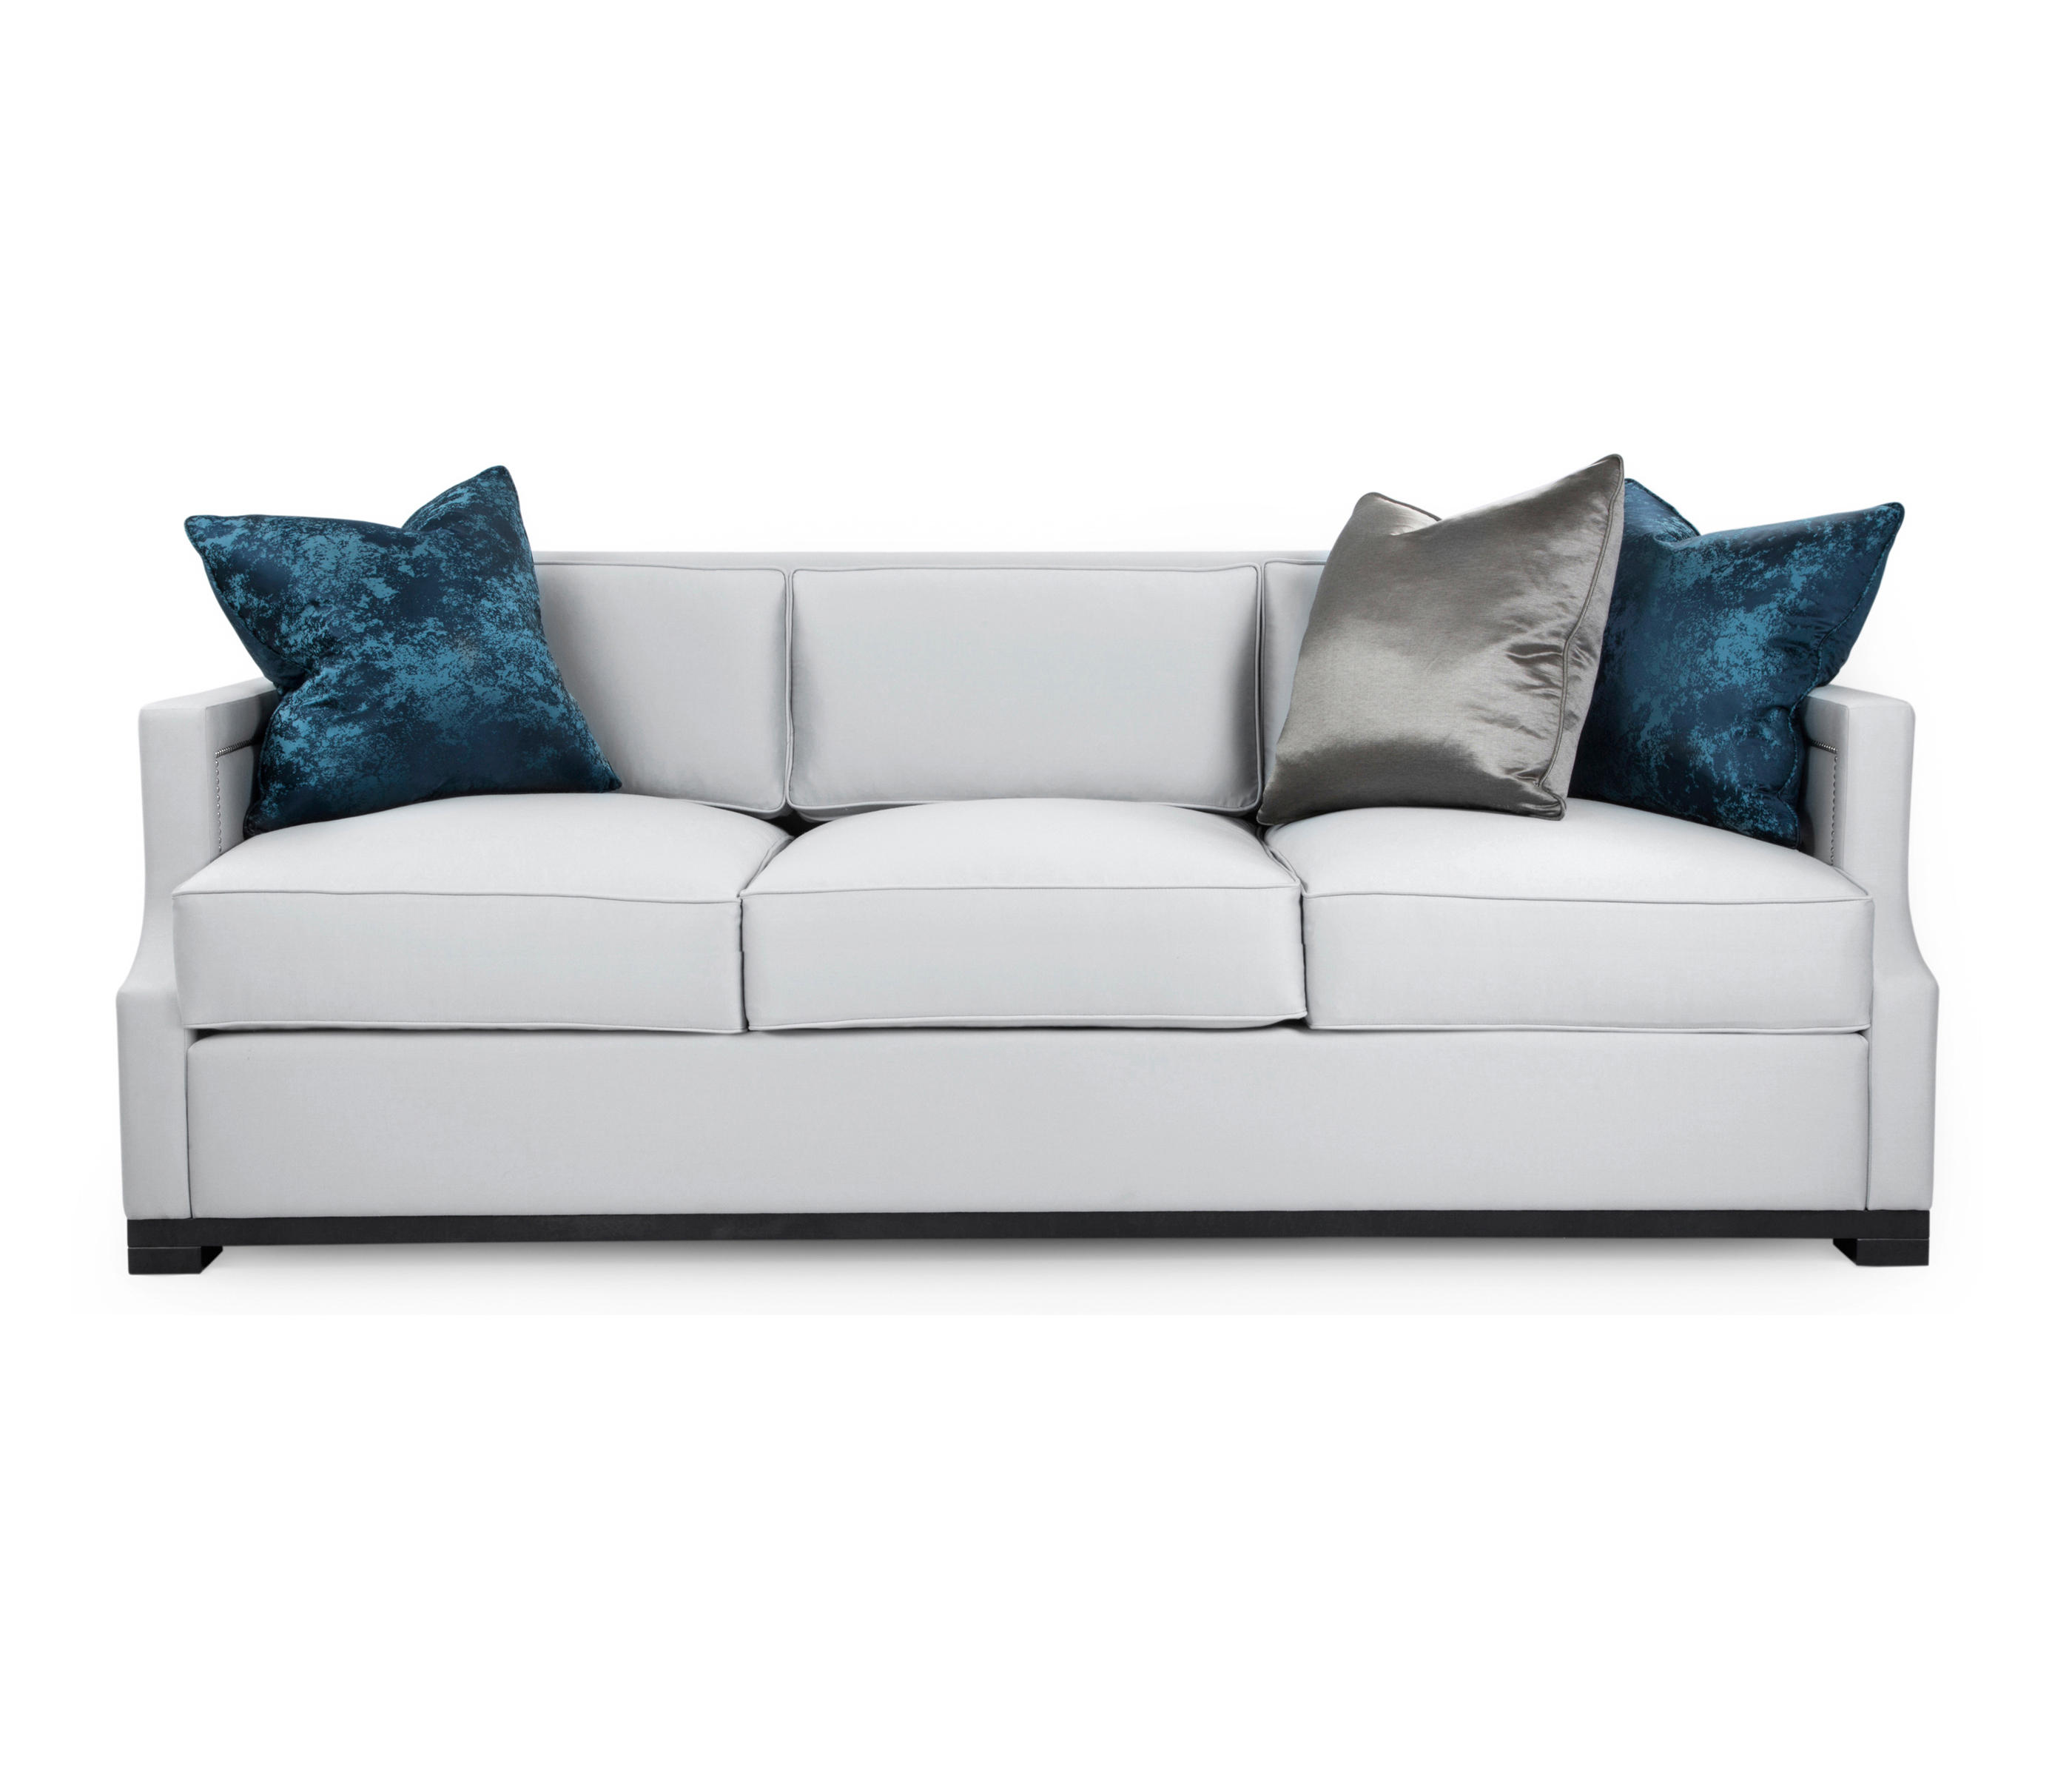 Belvedere sofa lounge sofas from the sofa chair company ltd architonic The sofa company